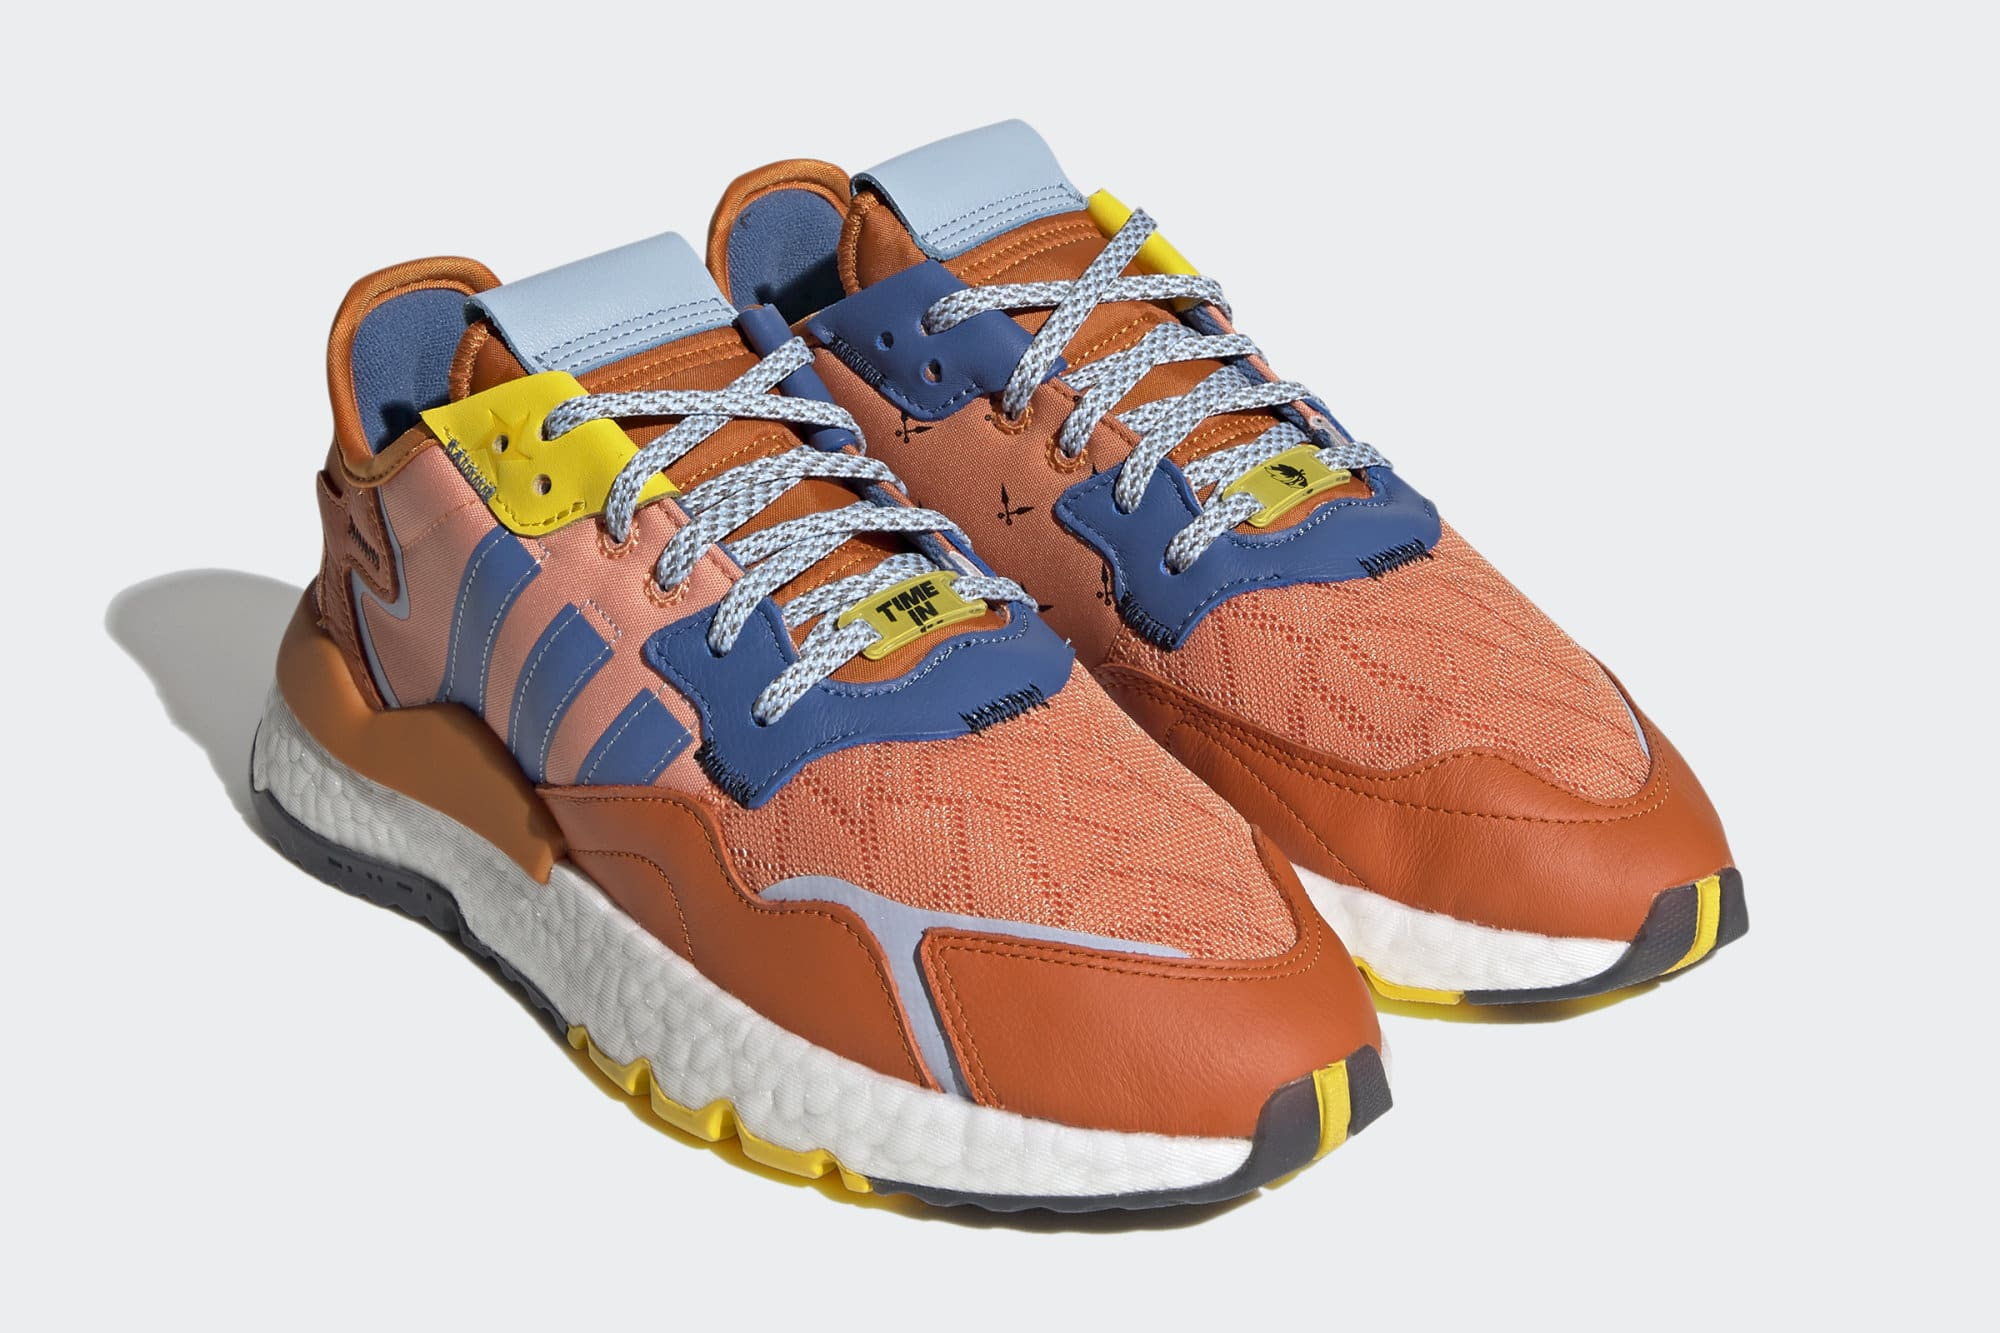 Ninja x Adidas Nite Jogger 'Orange' Q47199 Pair